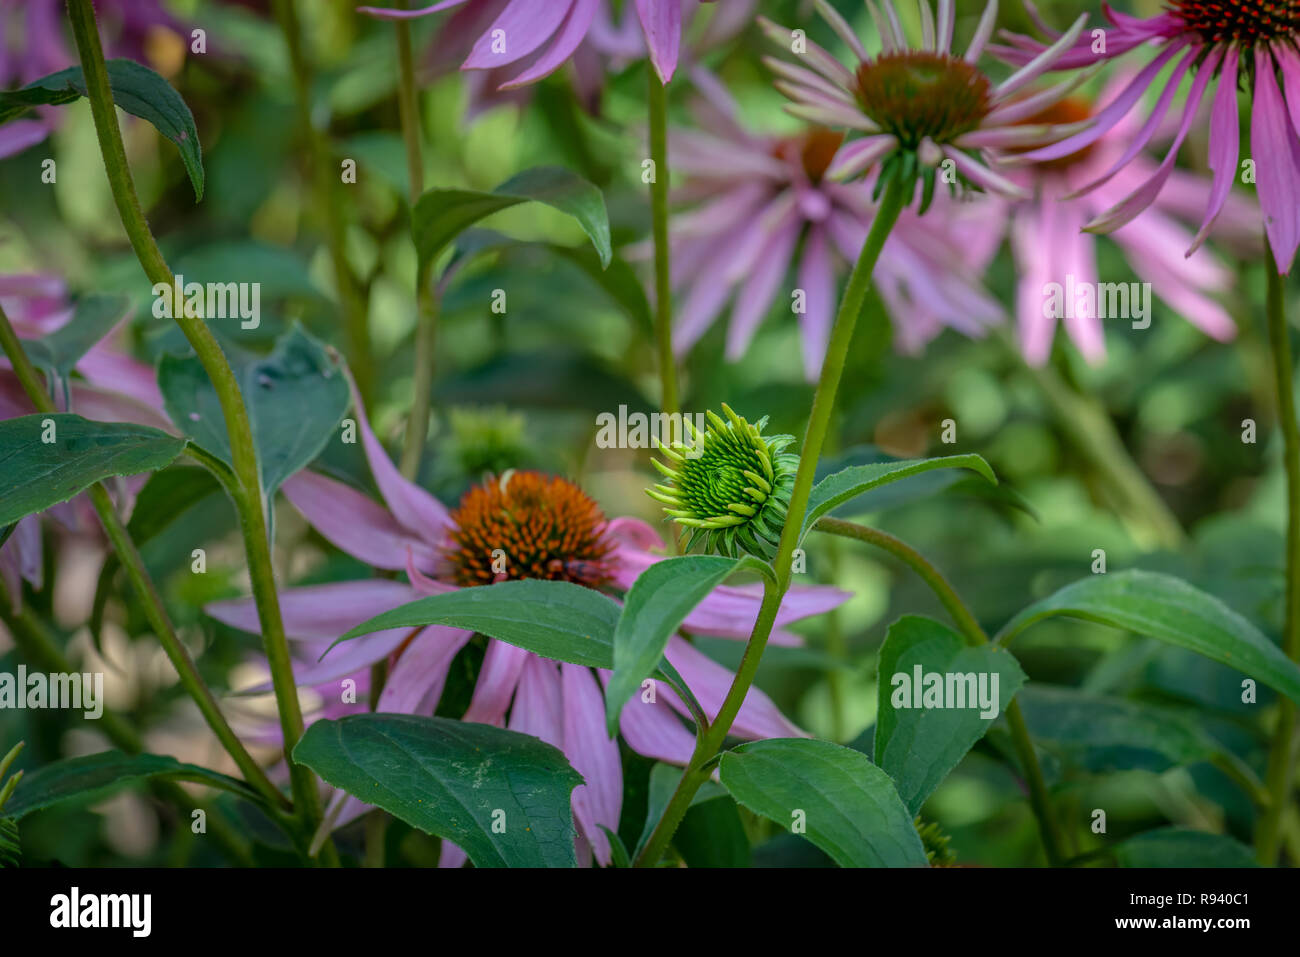 Fine art still life outdoor floral macro of an evolving single isolated young coneflower/echinacea blossom on natural blurred background,sunny summer - Stock Image